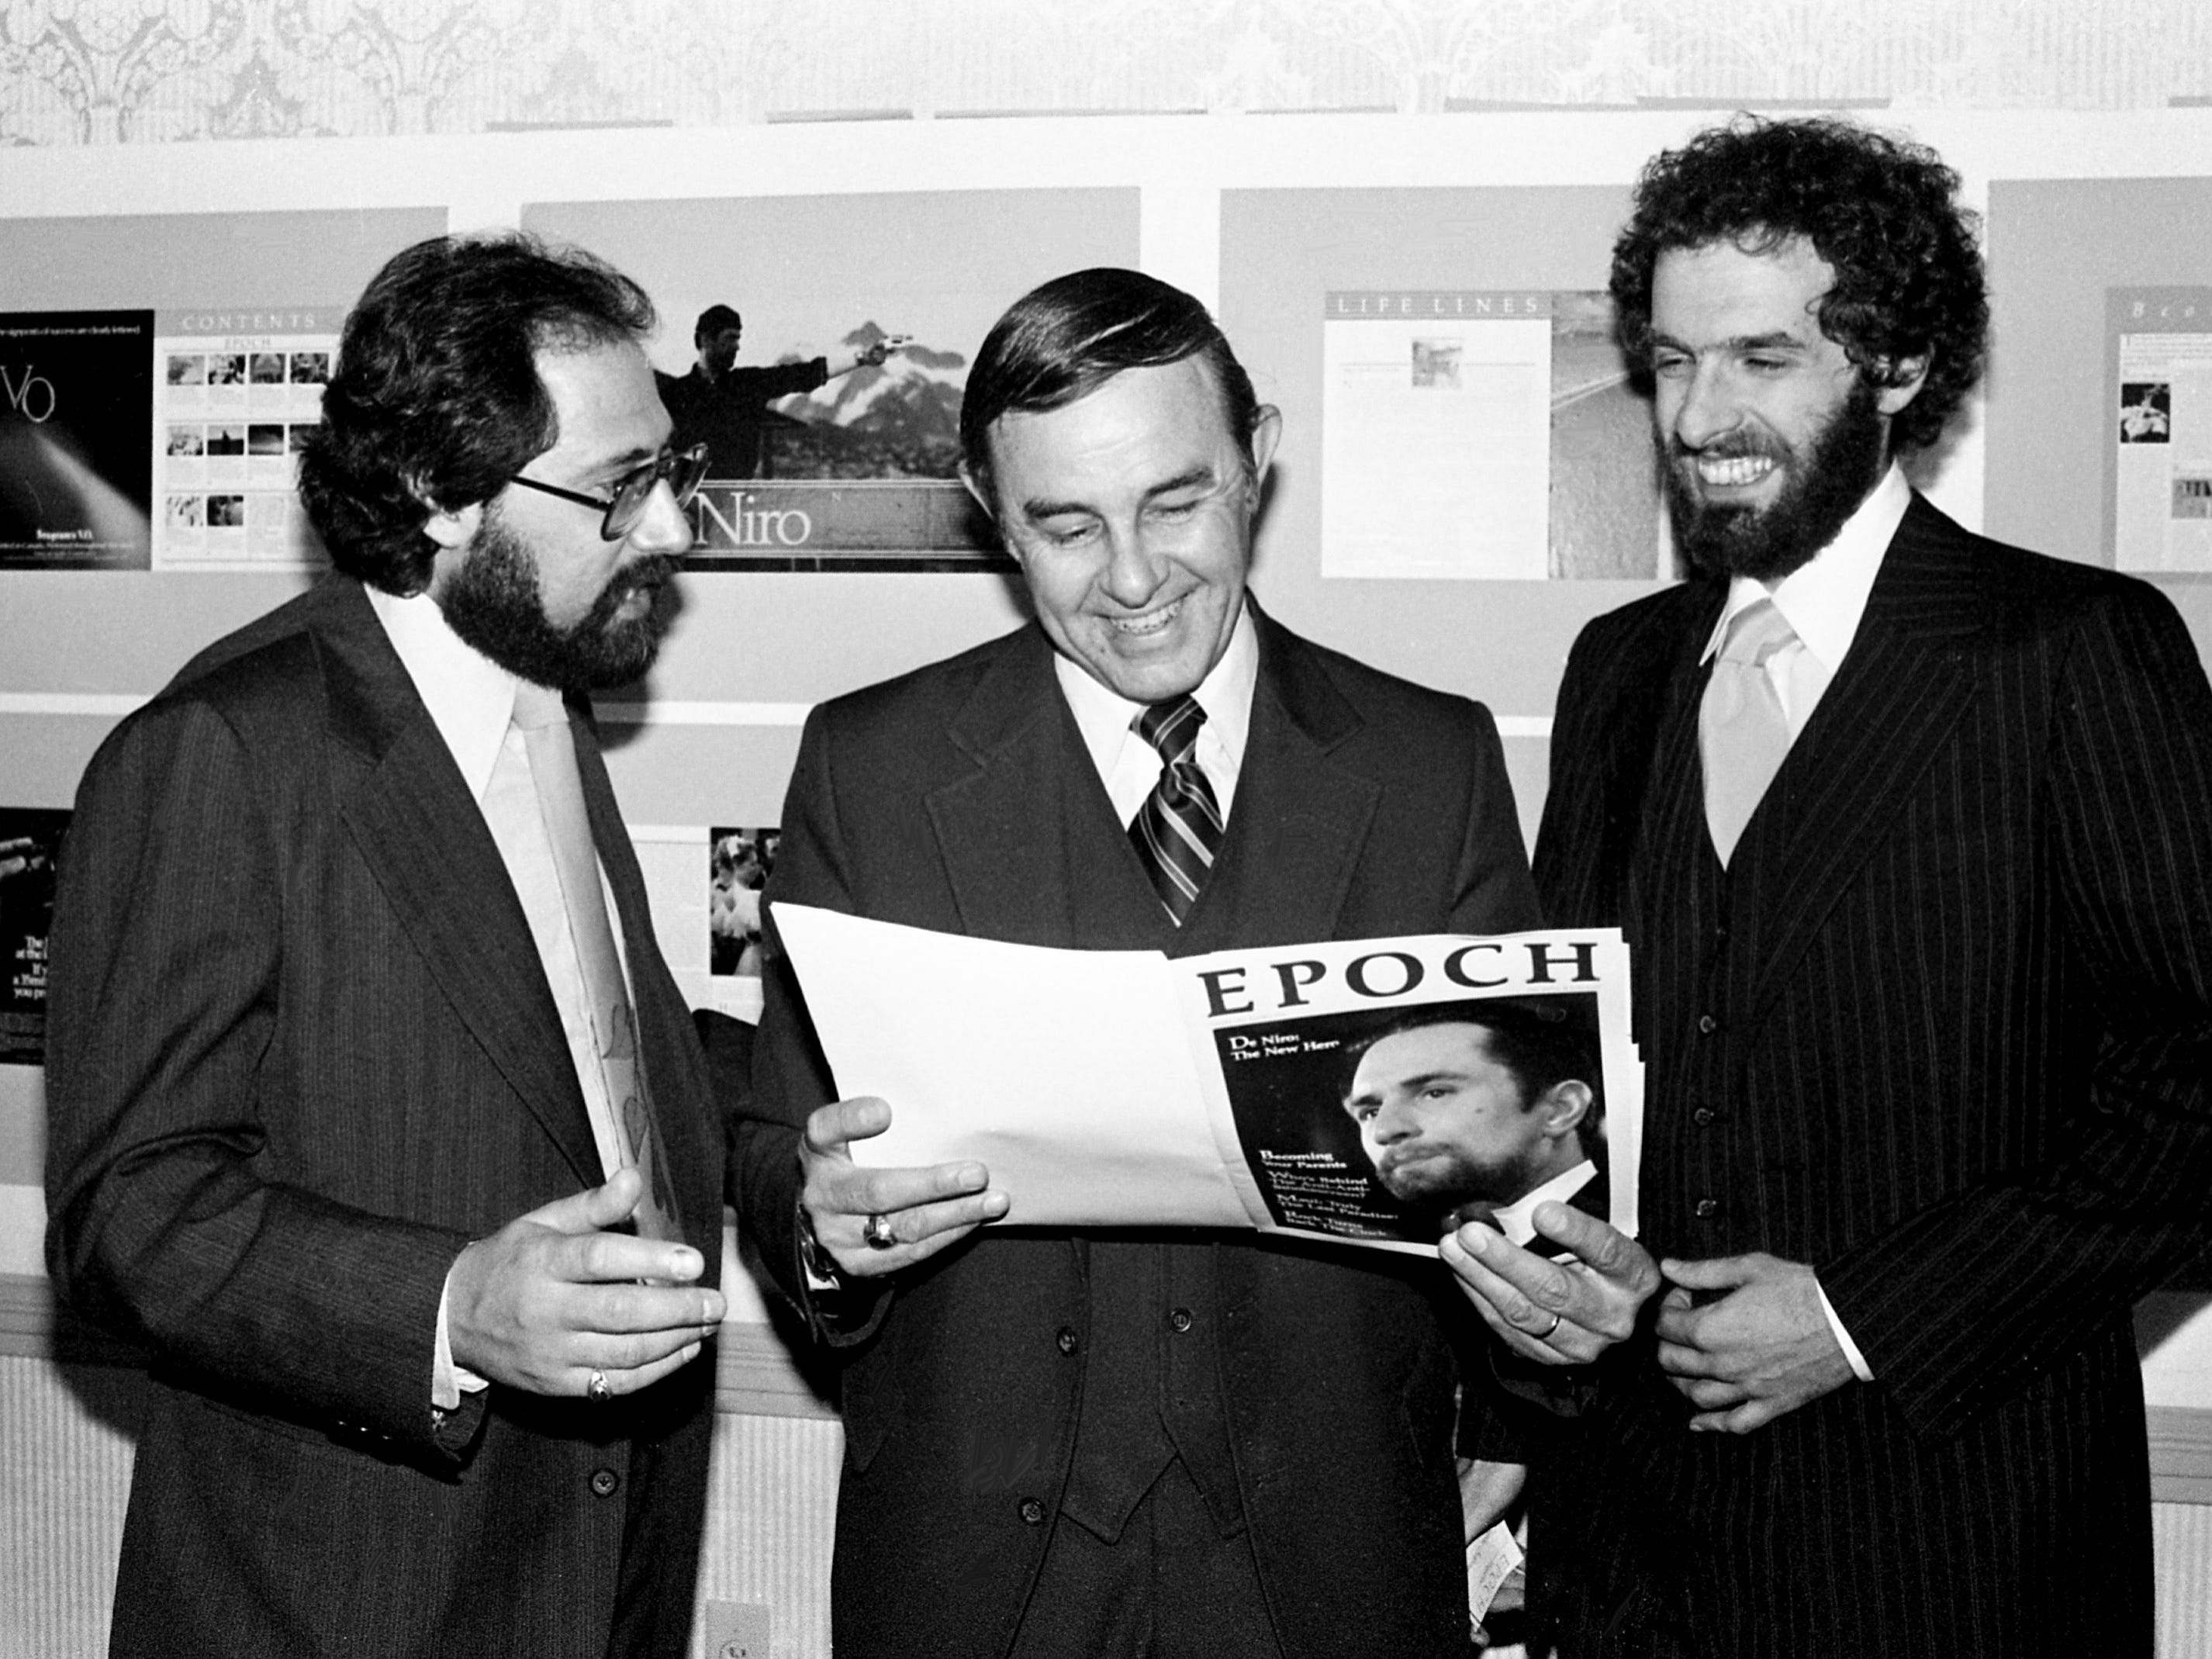 Proudly displaying the cover of the new Nashville-based Epoch magazine April 11, 1979, at the Richland Country Club are its editor, Paul Lambert, left, Jack Shockley of Shockley Research Inc., and founder Charles Biderman. Aimed at the 30-year-old generation, the publication will debut a test issue in June.